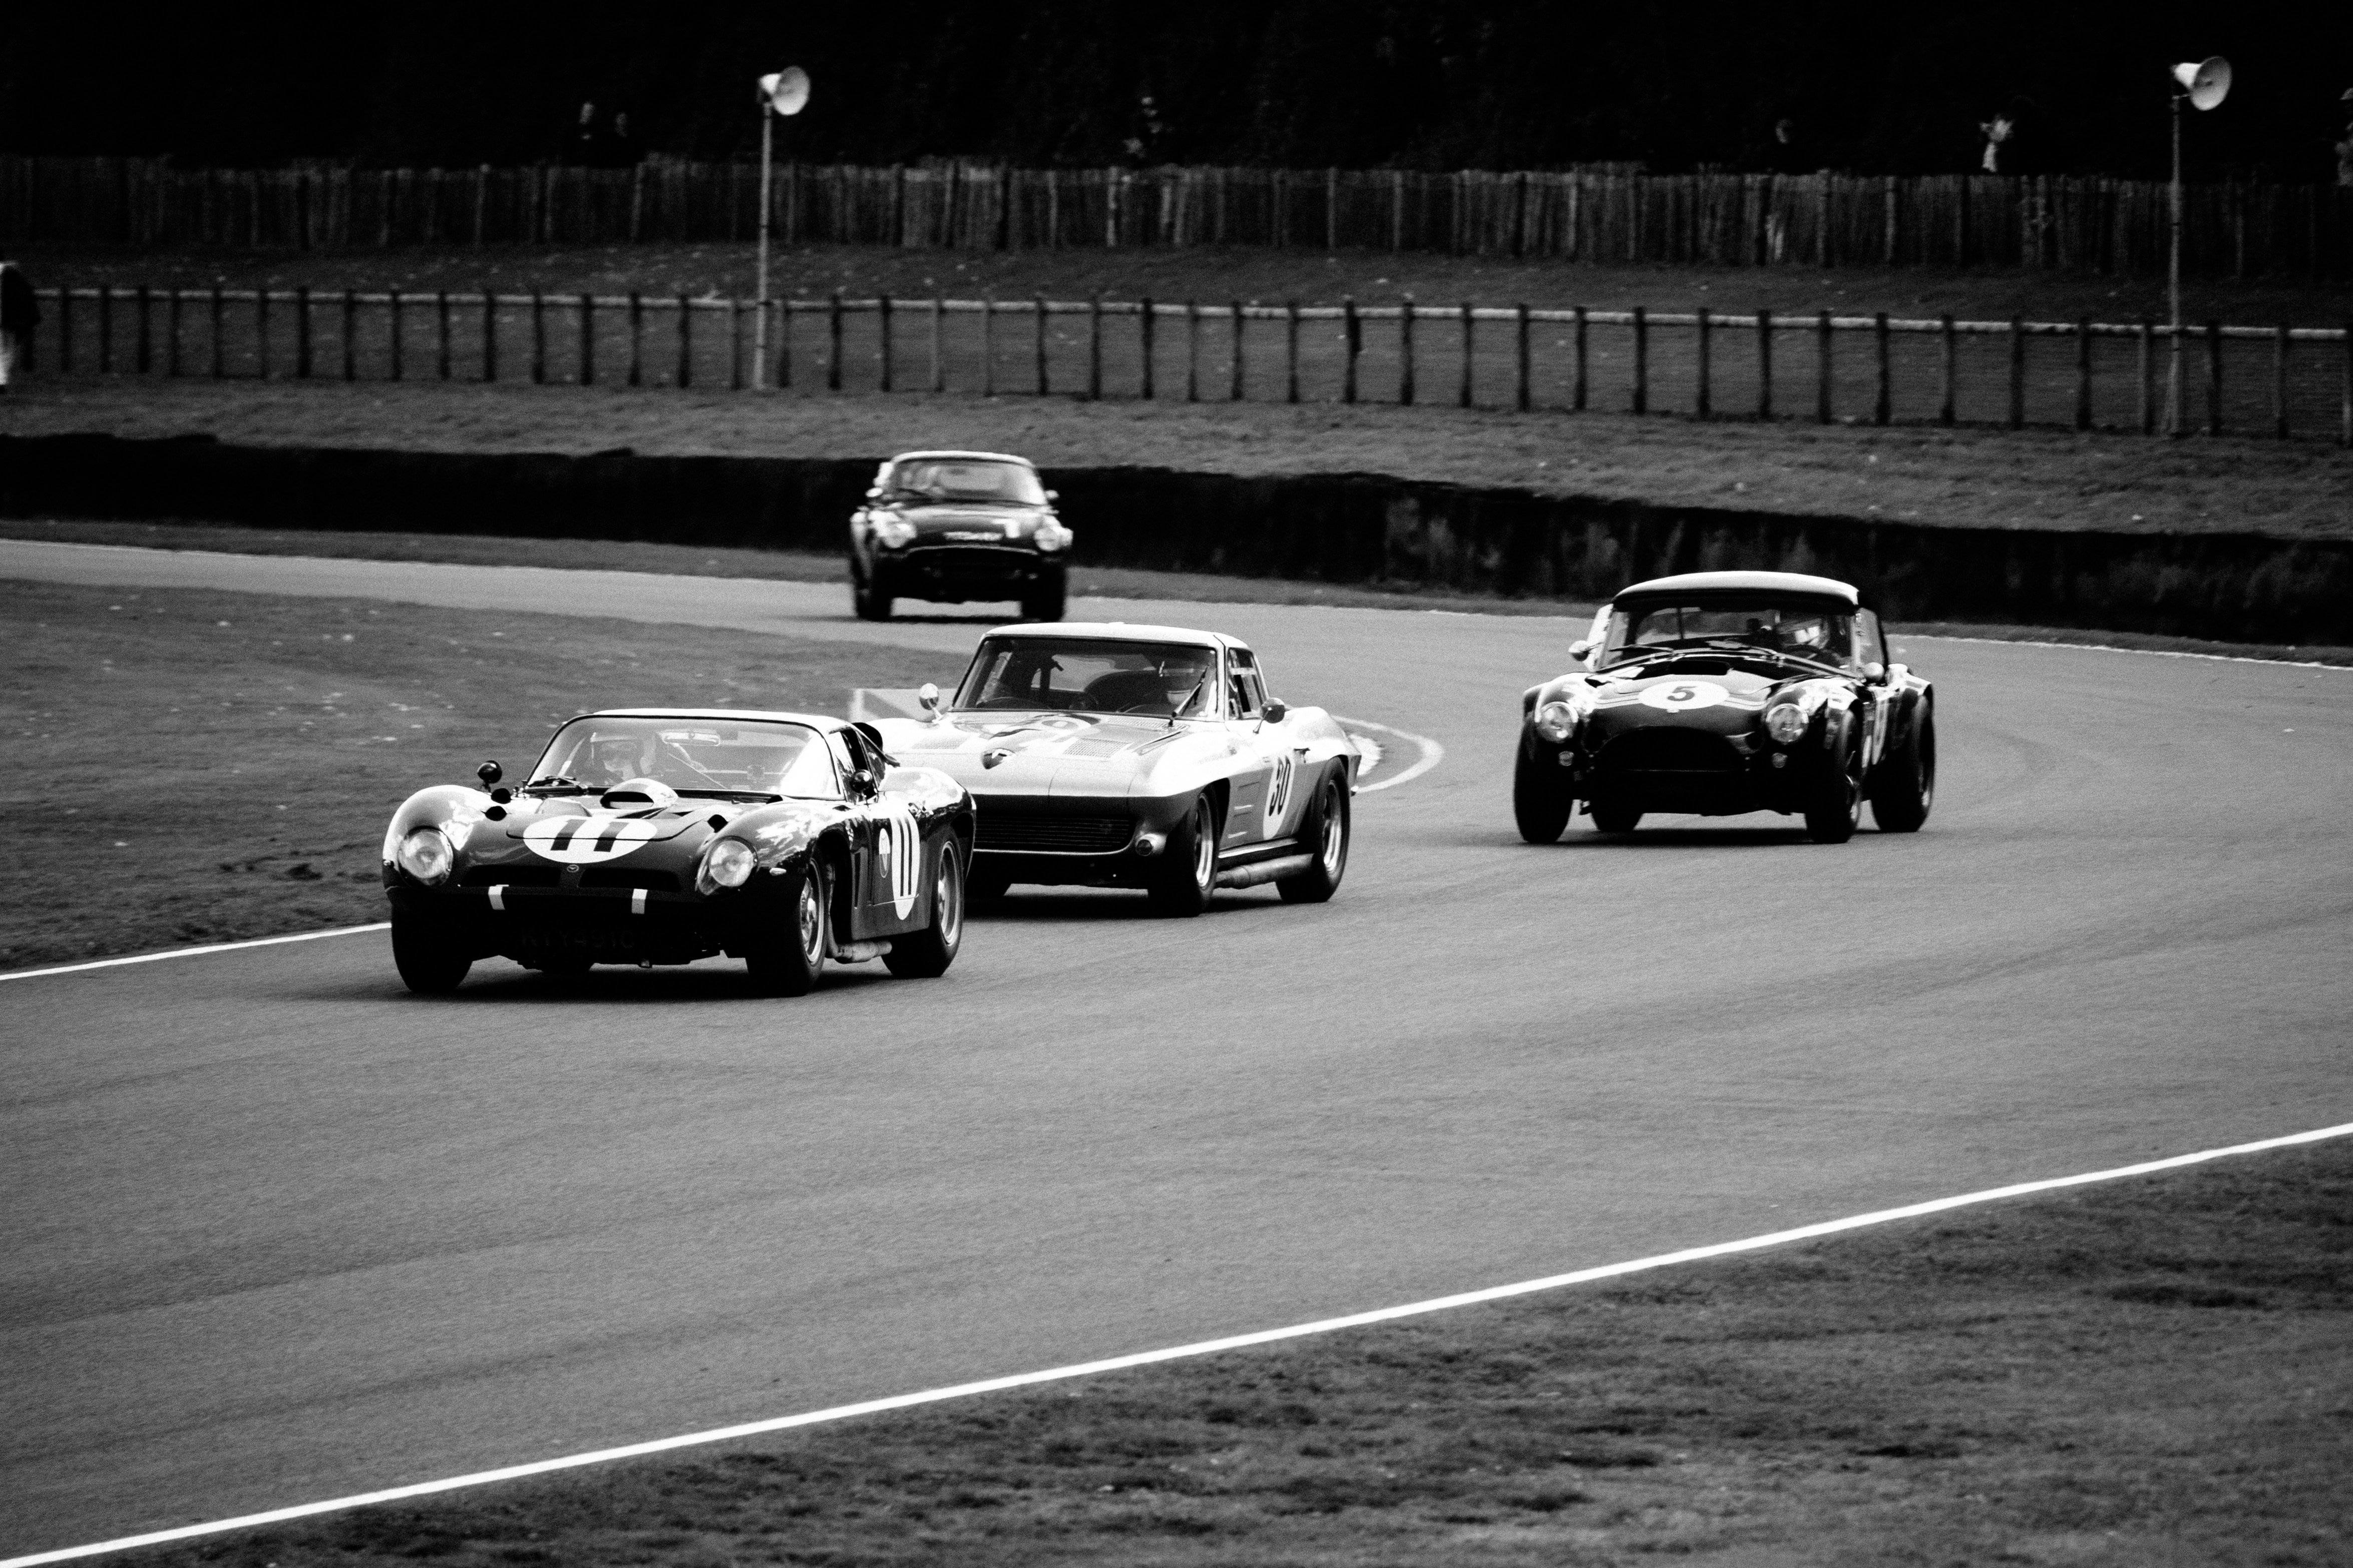 Icarus Sports Stages Broadcast Showcase For Masters Historic Festival In Brands Hatch Uk Icarus Sports